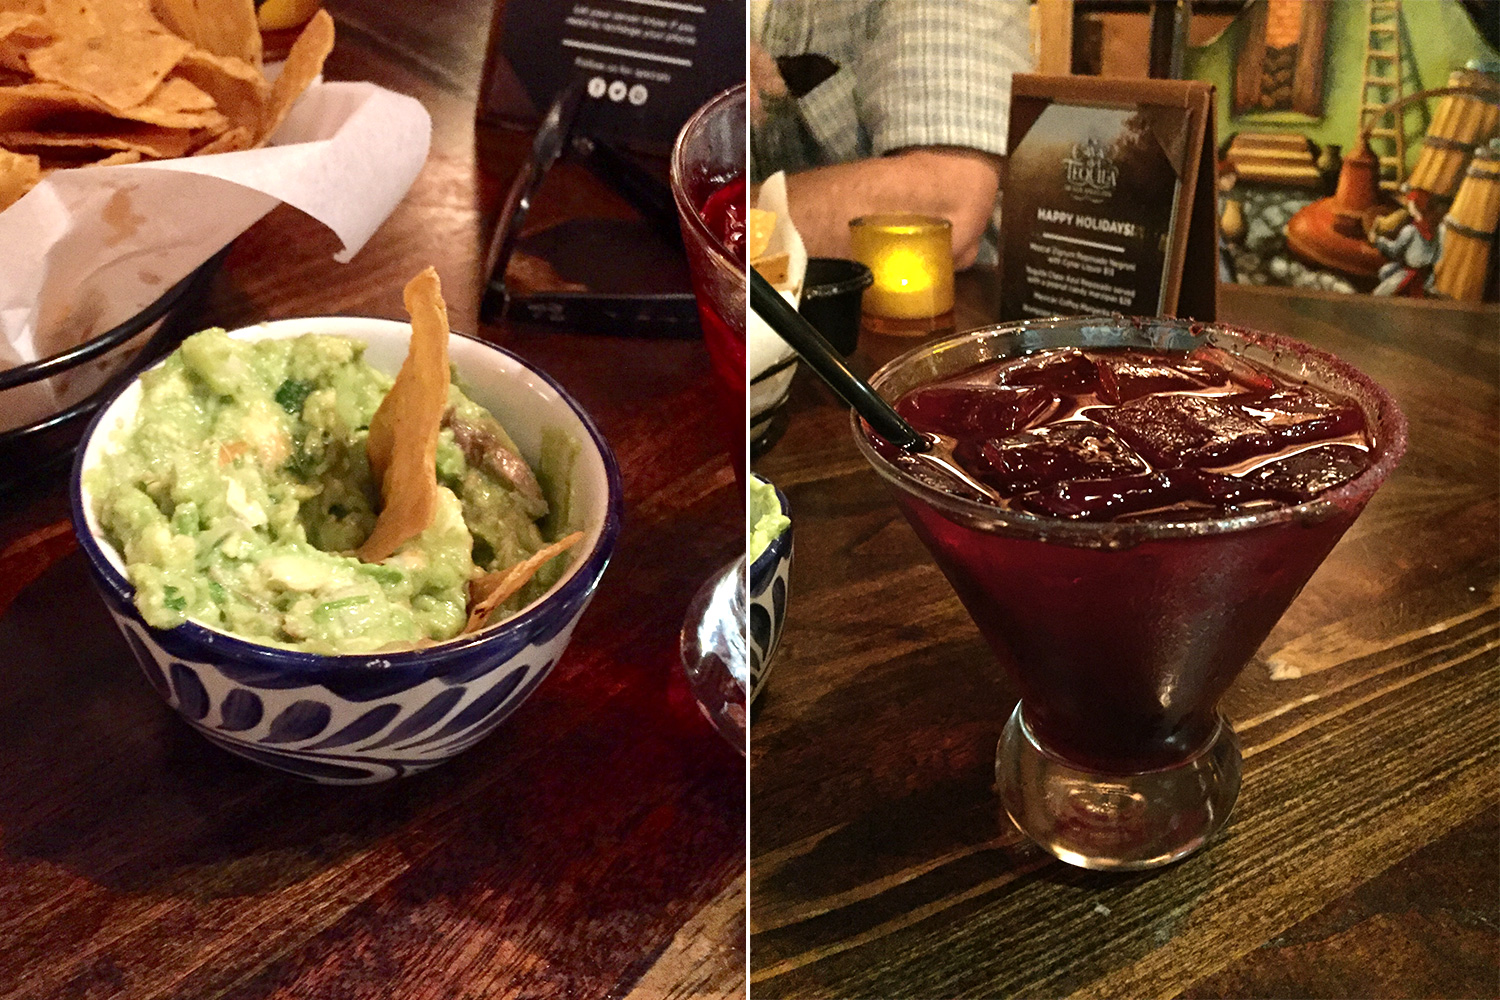 Some of the best guacamole served at La Cava del Tequila inside Epcot's Mexico pavilion. The margaritas can't be beat either! So good!